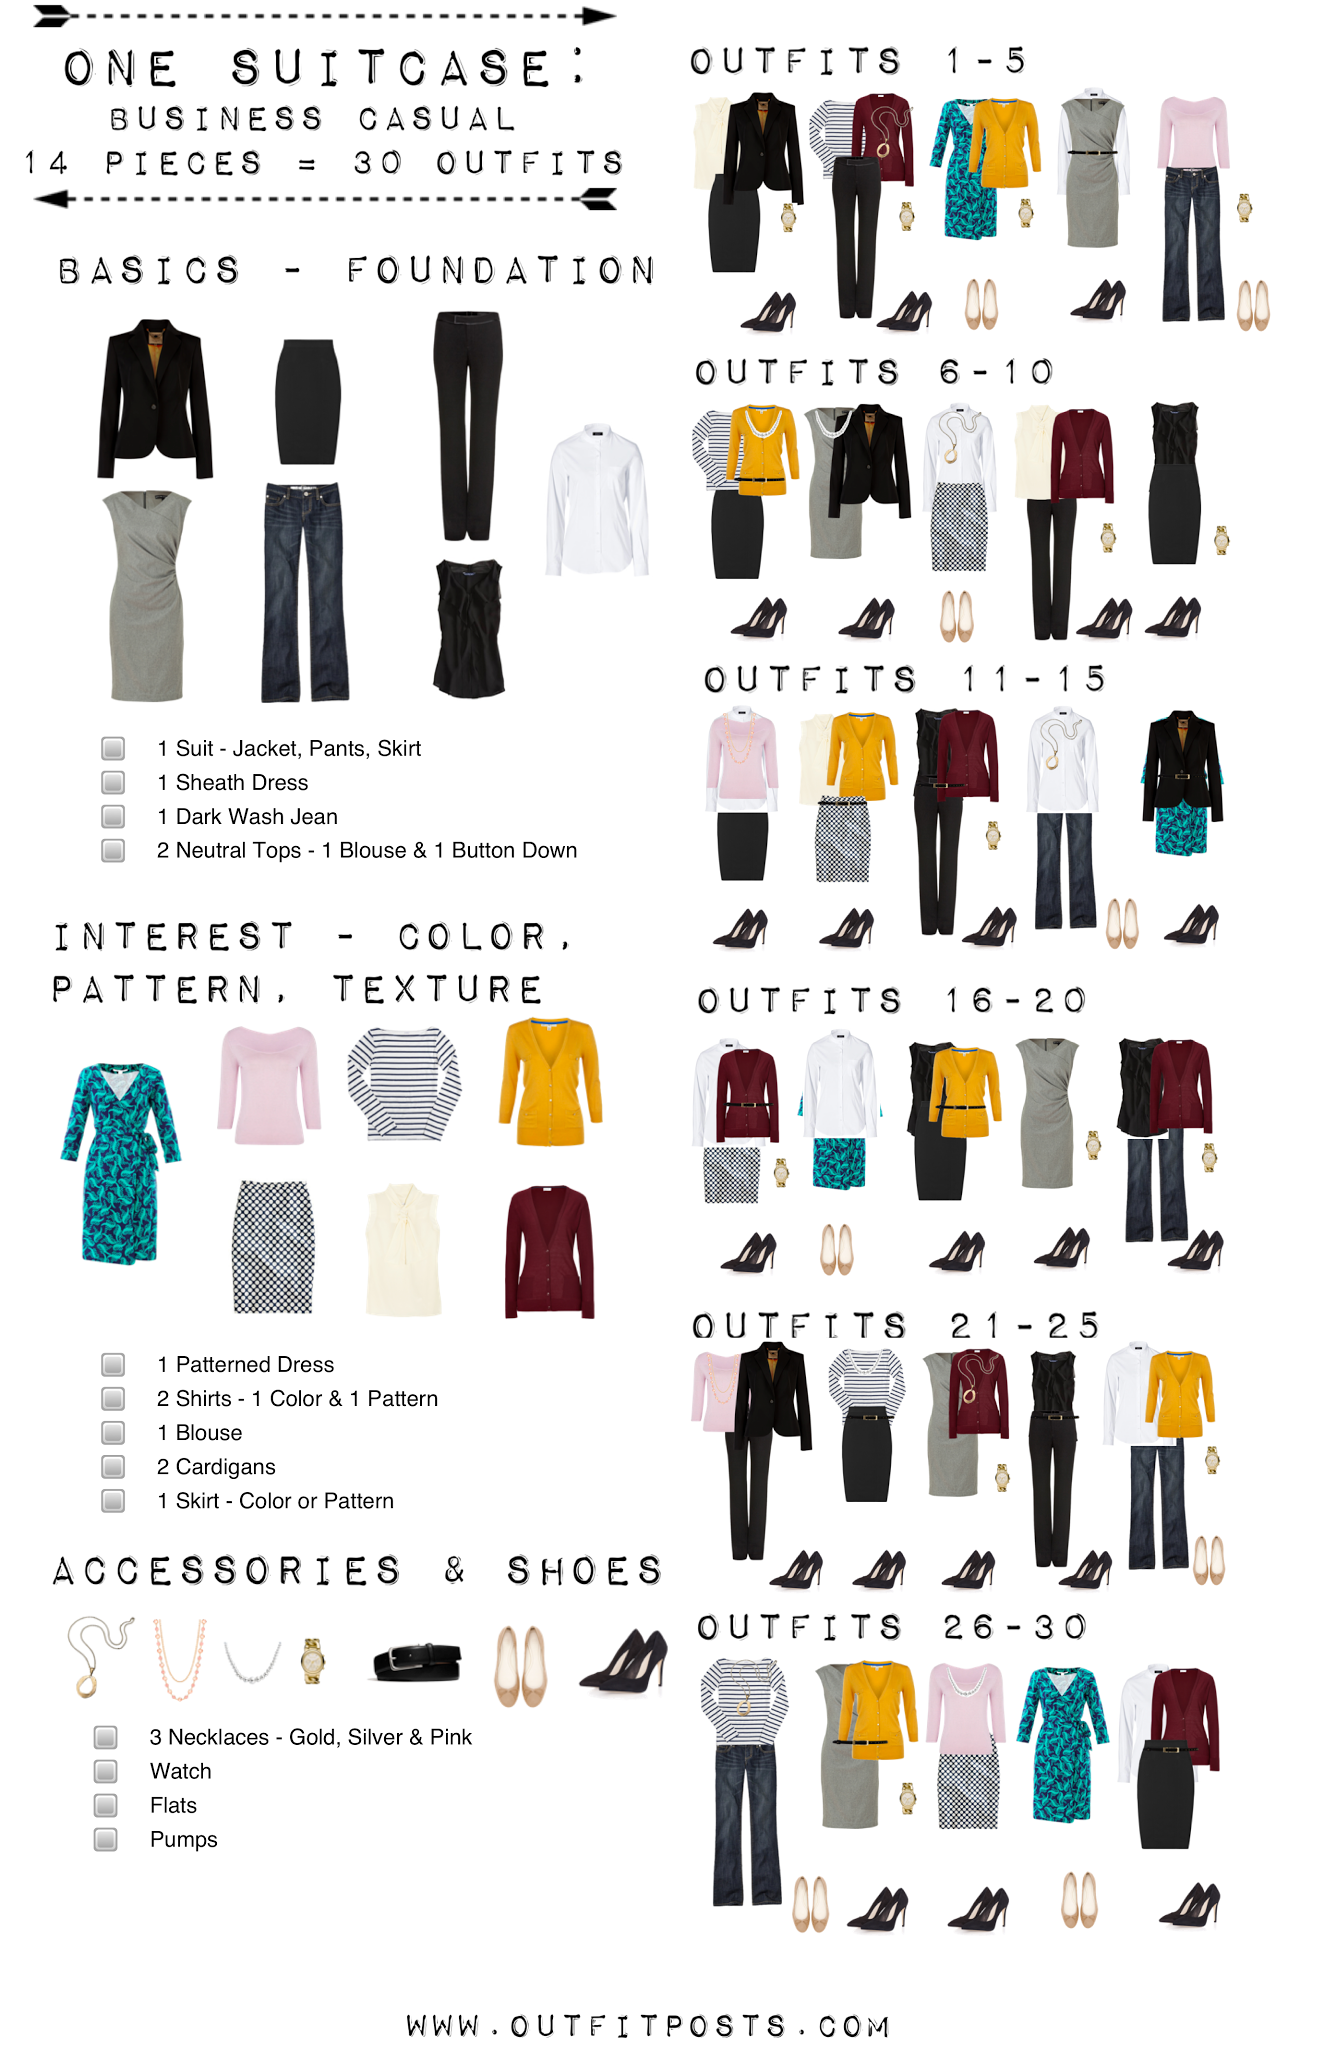 one suitcase: business casual